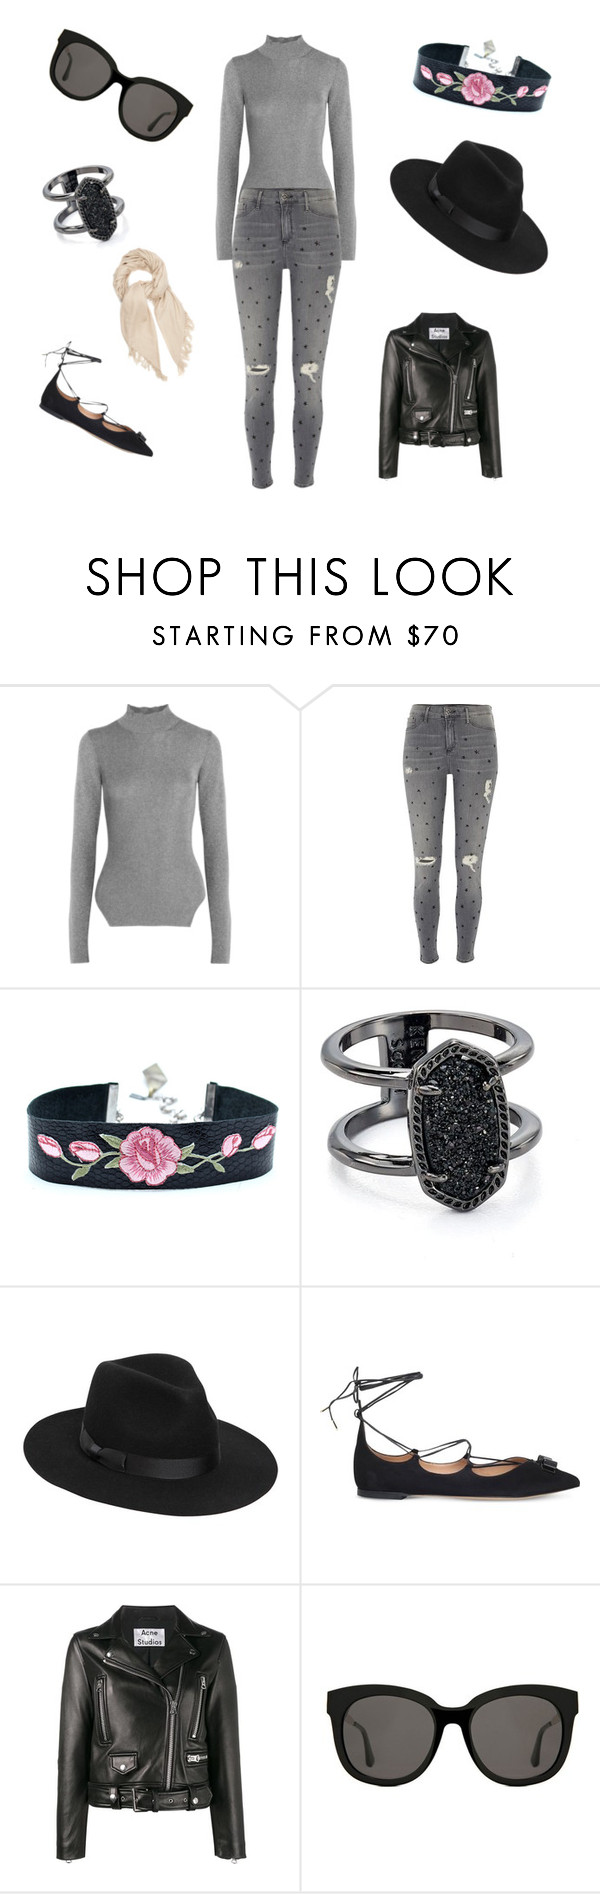 """""""Untitled #103"""" by remedypotter ❤ liked on Polyvore featuring Thierry Mugler, River Island, Kendra Scott, Lack of Color, Salvatore Ferragamo, Acne Studios, Gentle Monster and Isabel Marant"""